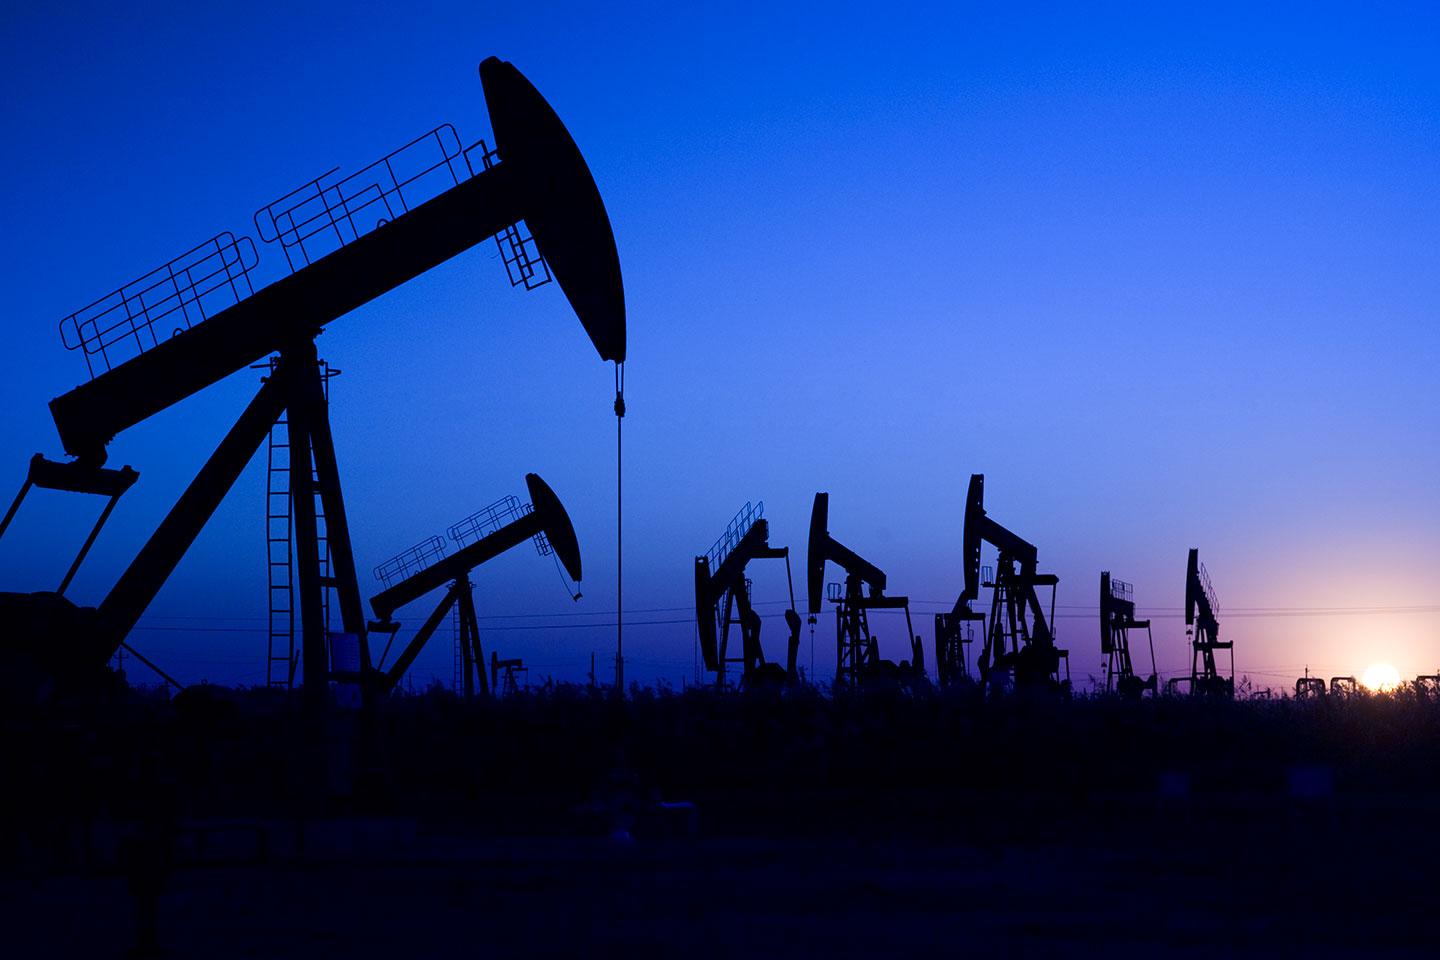 United States set to overtake Saudi oil output this year